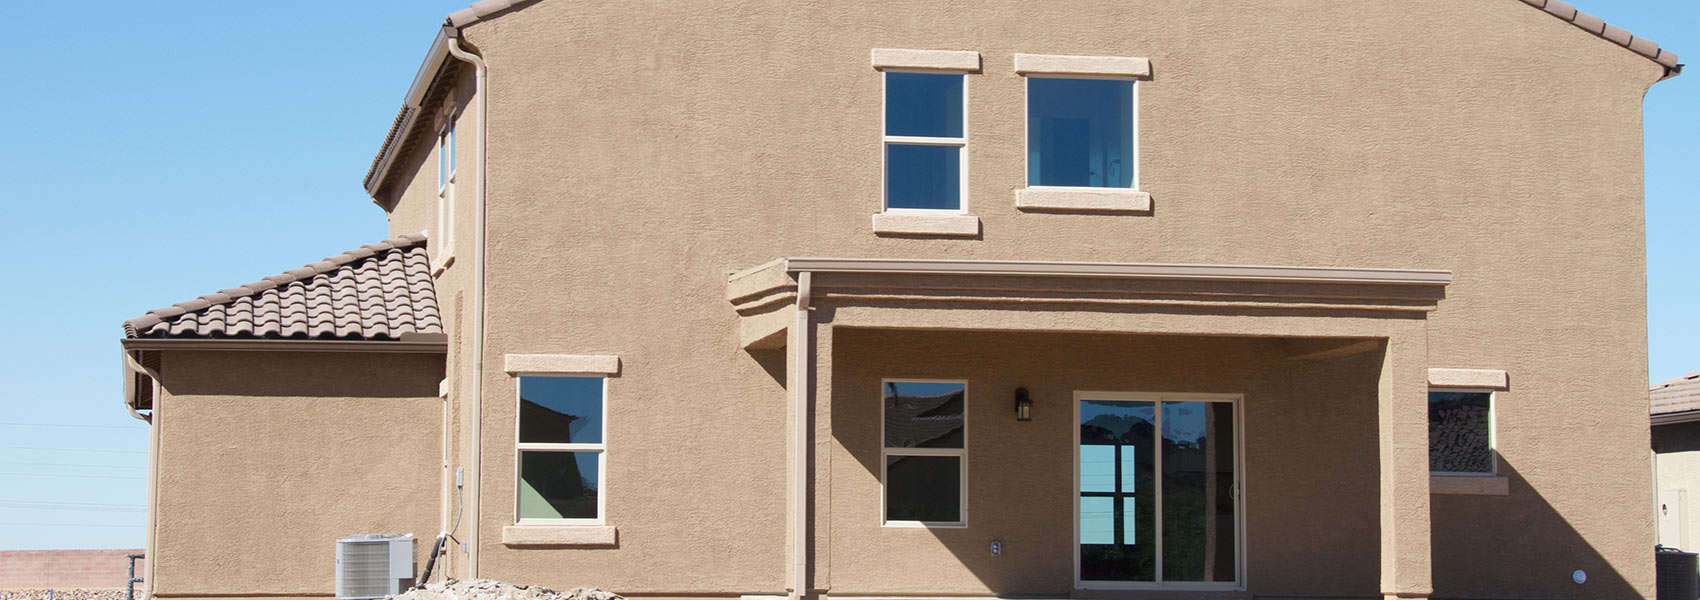 stucco companies in phoenix az